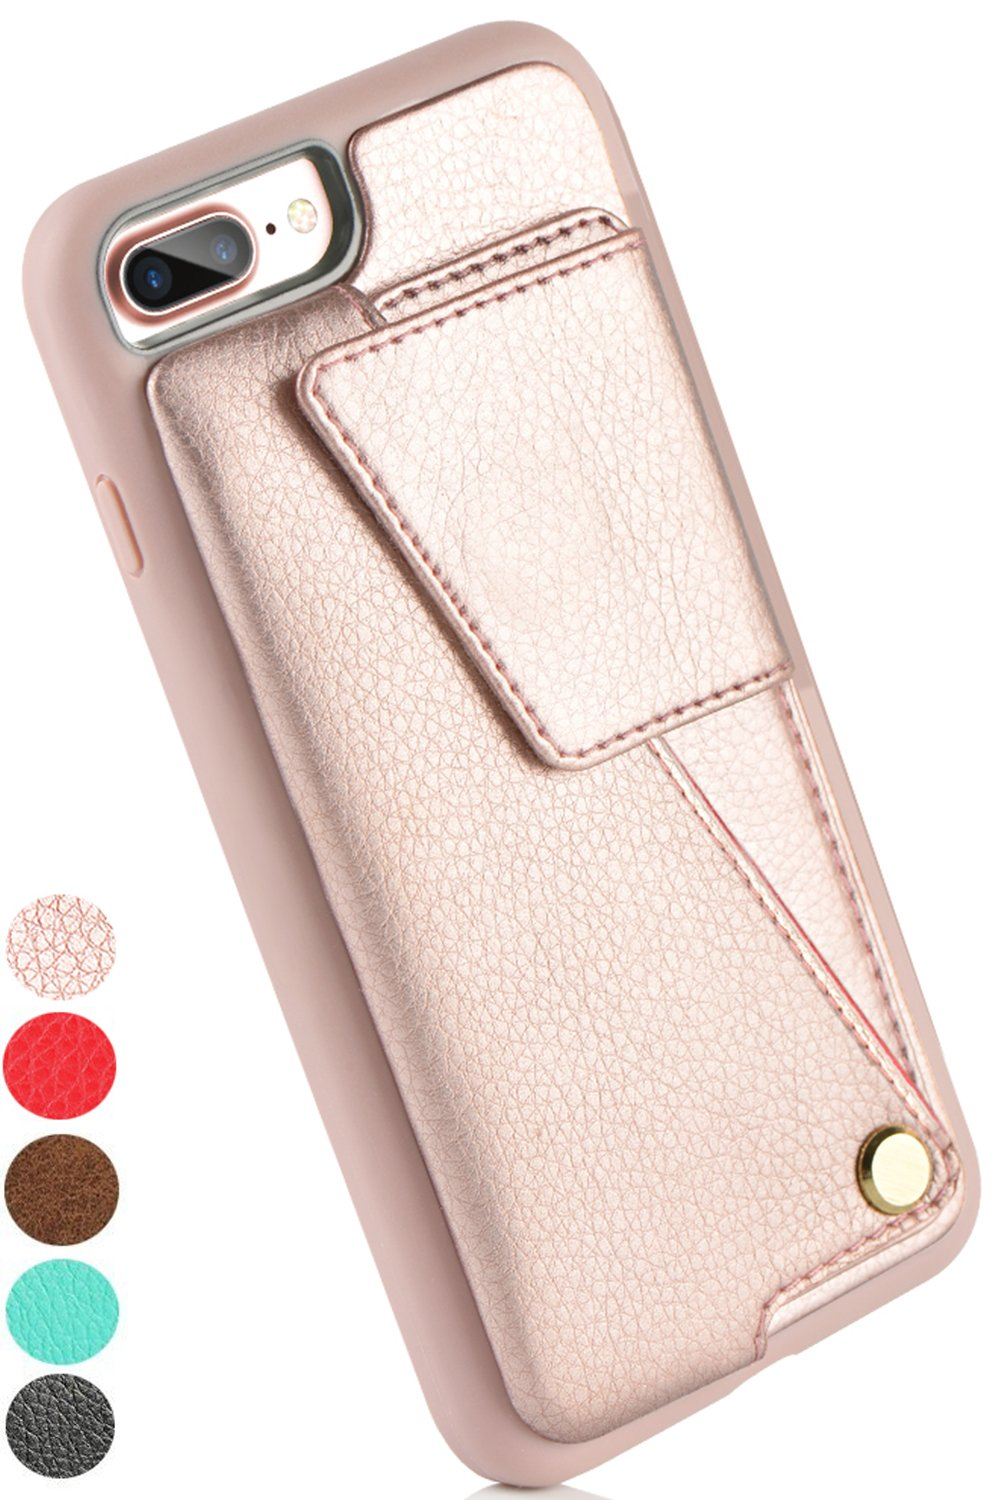 iPhone 8 Plus Wallet Case, ZVEdeng iPhone 7 Plus Card Holder Case, Protective Shockproof Leather Wallet Case with Card Holder for Apple iPhone 8 Plus (2017)/iPhone 7 Plus (2016) - Rose Gold … by ZVEdeng (Image #1)